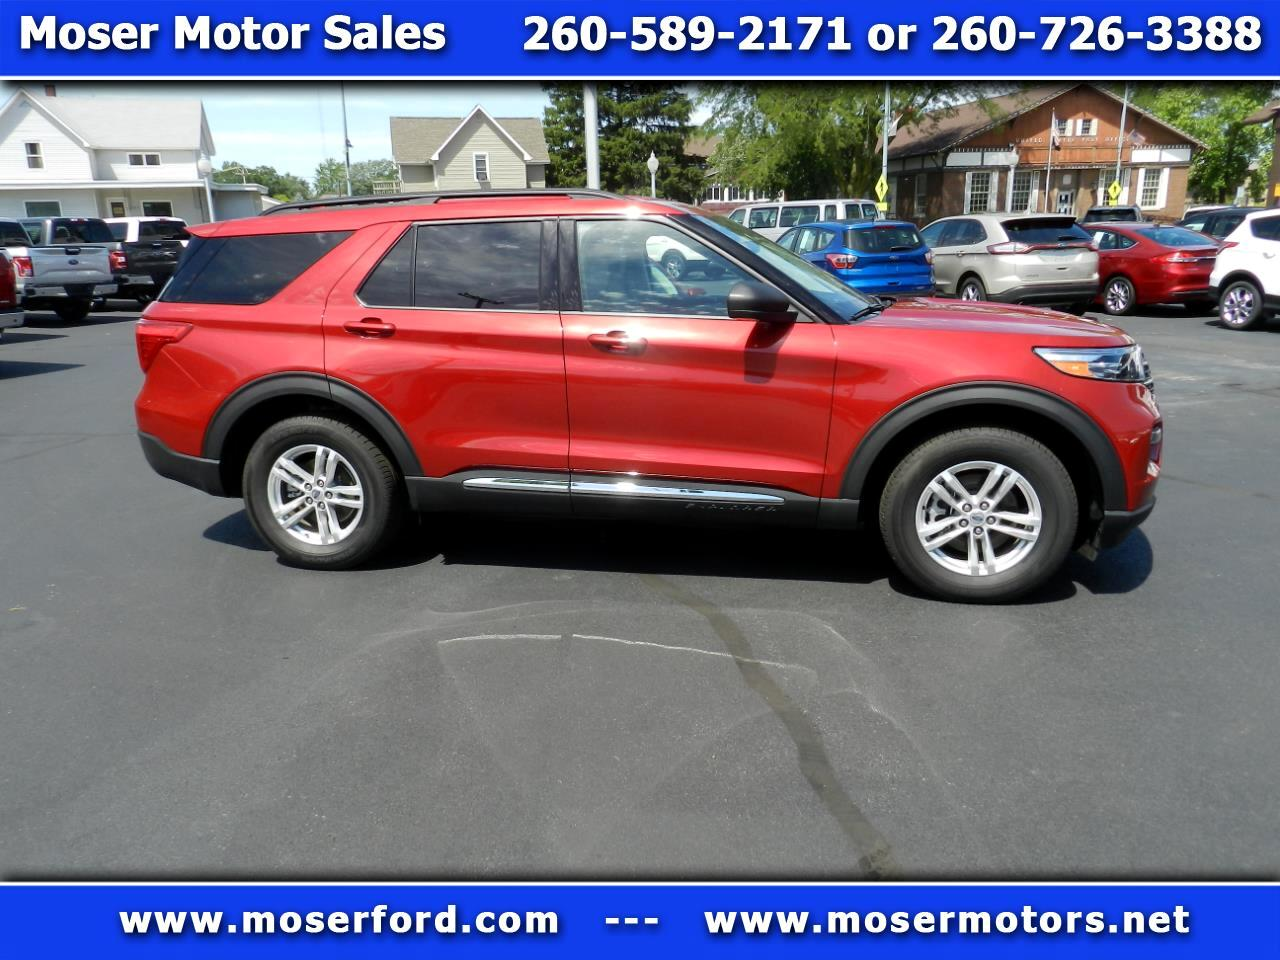 Ford Explorer XLT AWD 2020